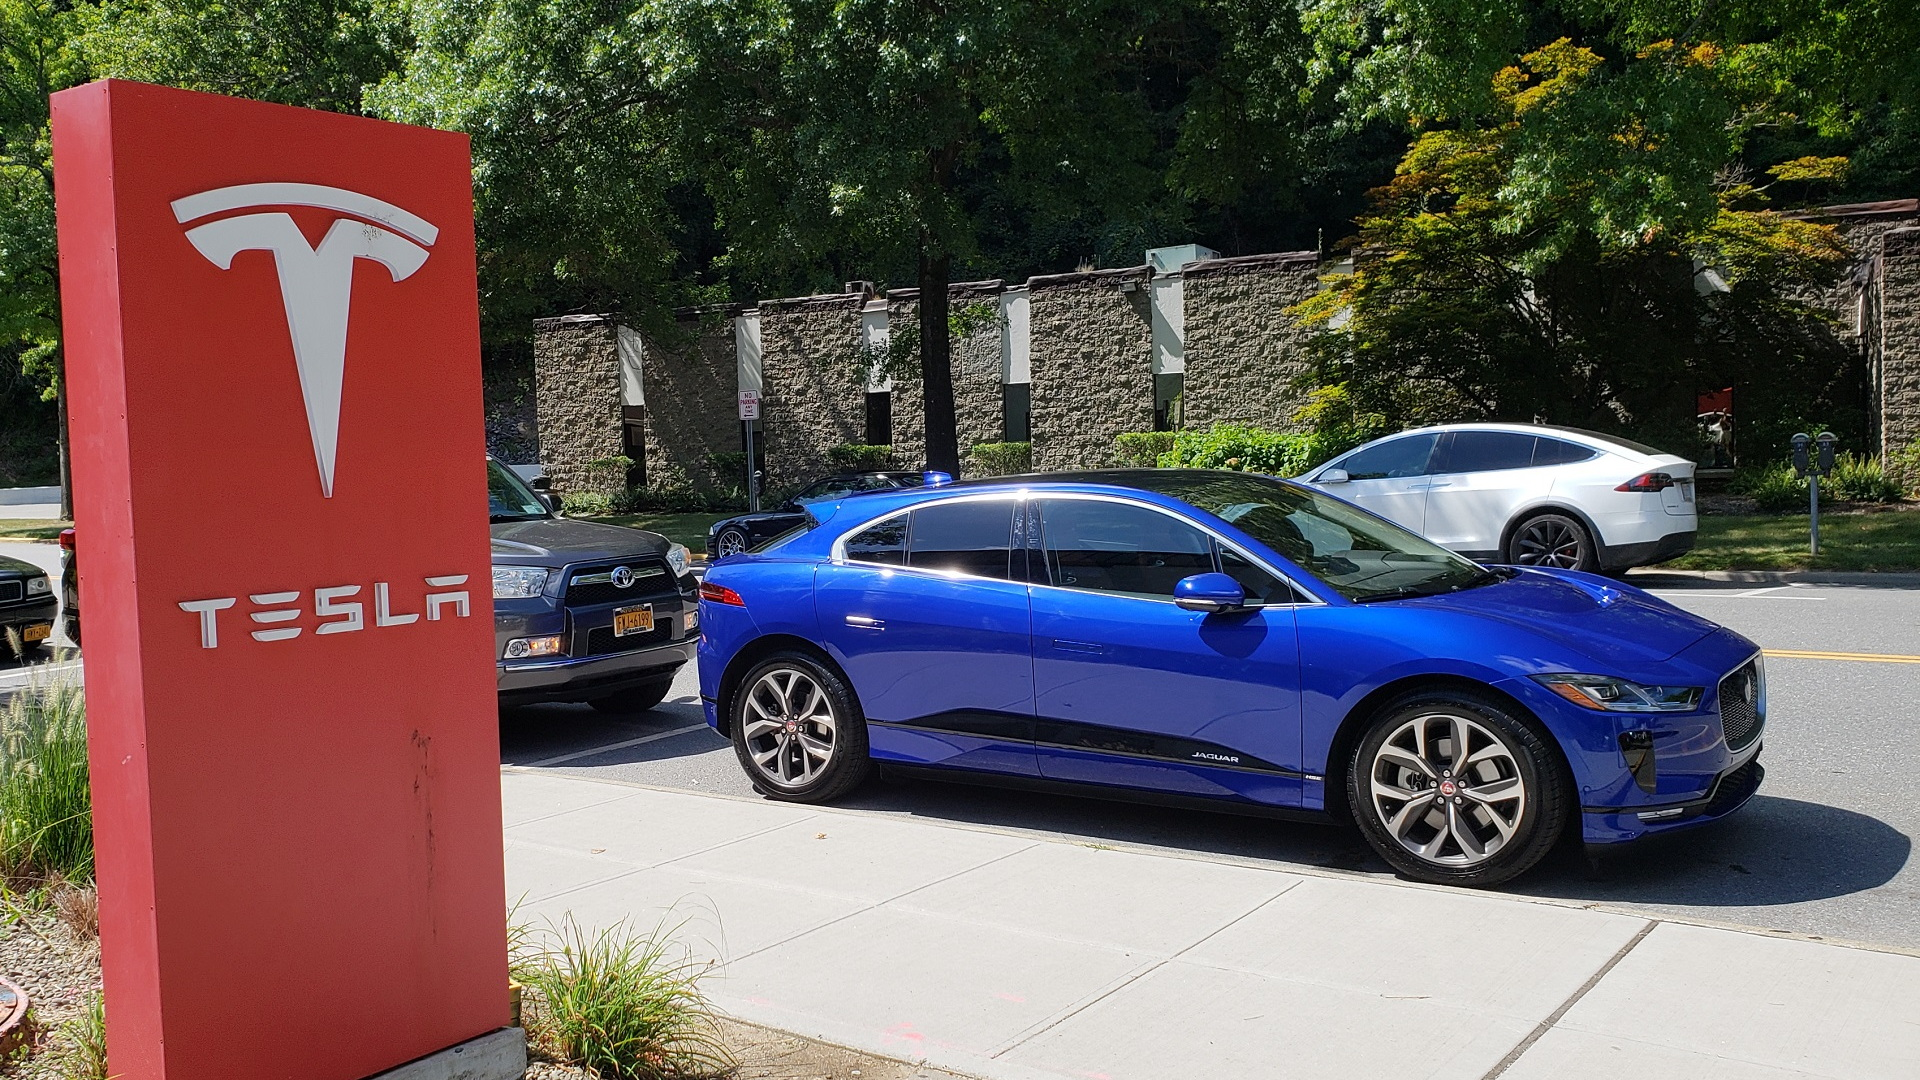 2019 Jaguar I-Pace, photographed outside Tesla Store, Mount Kisco, NY